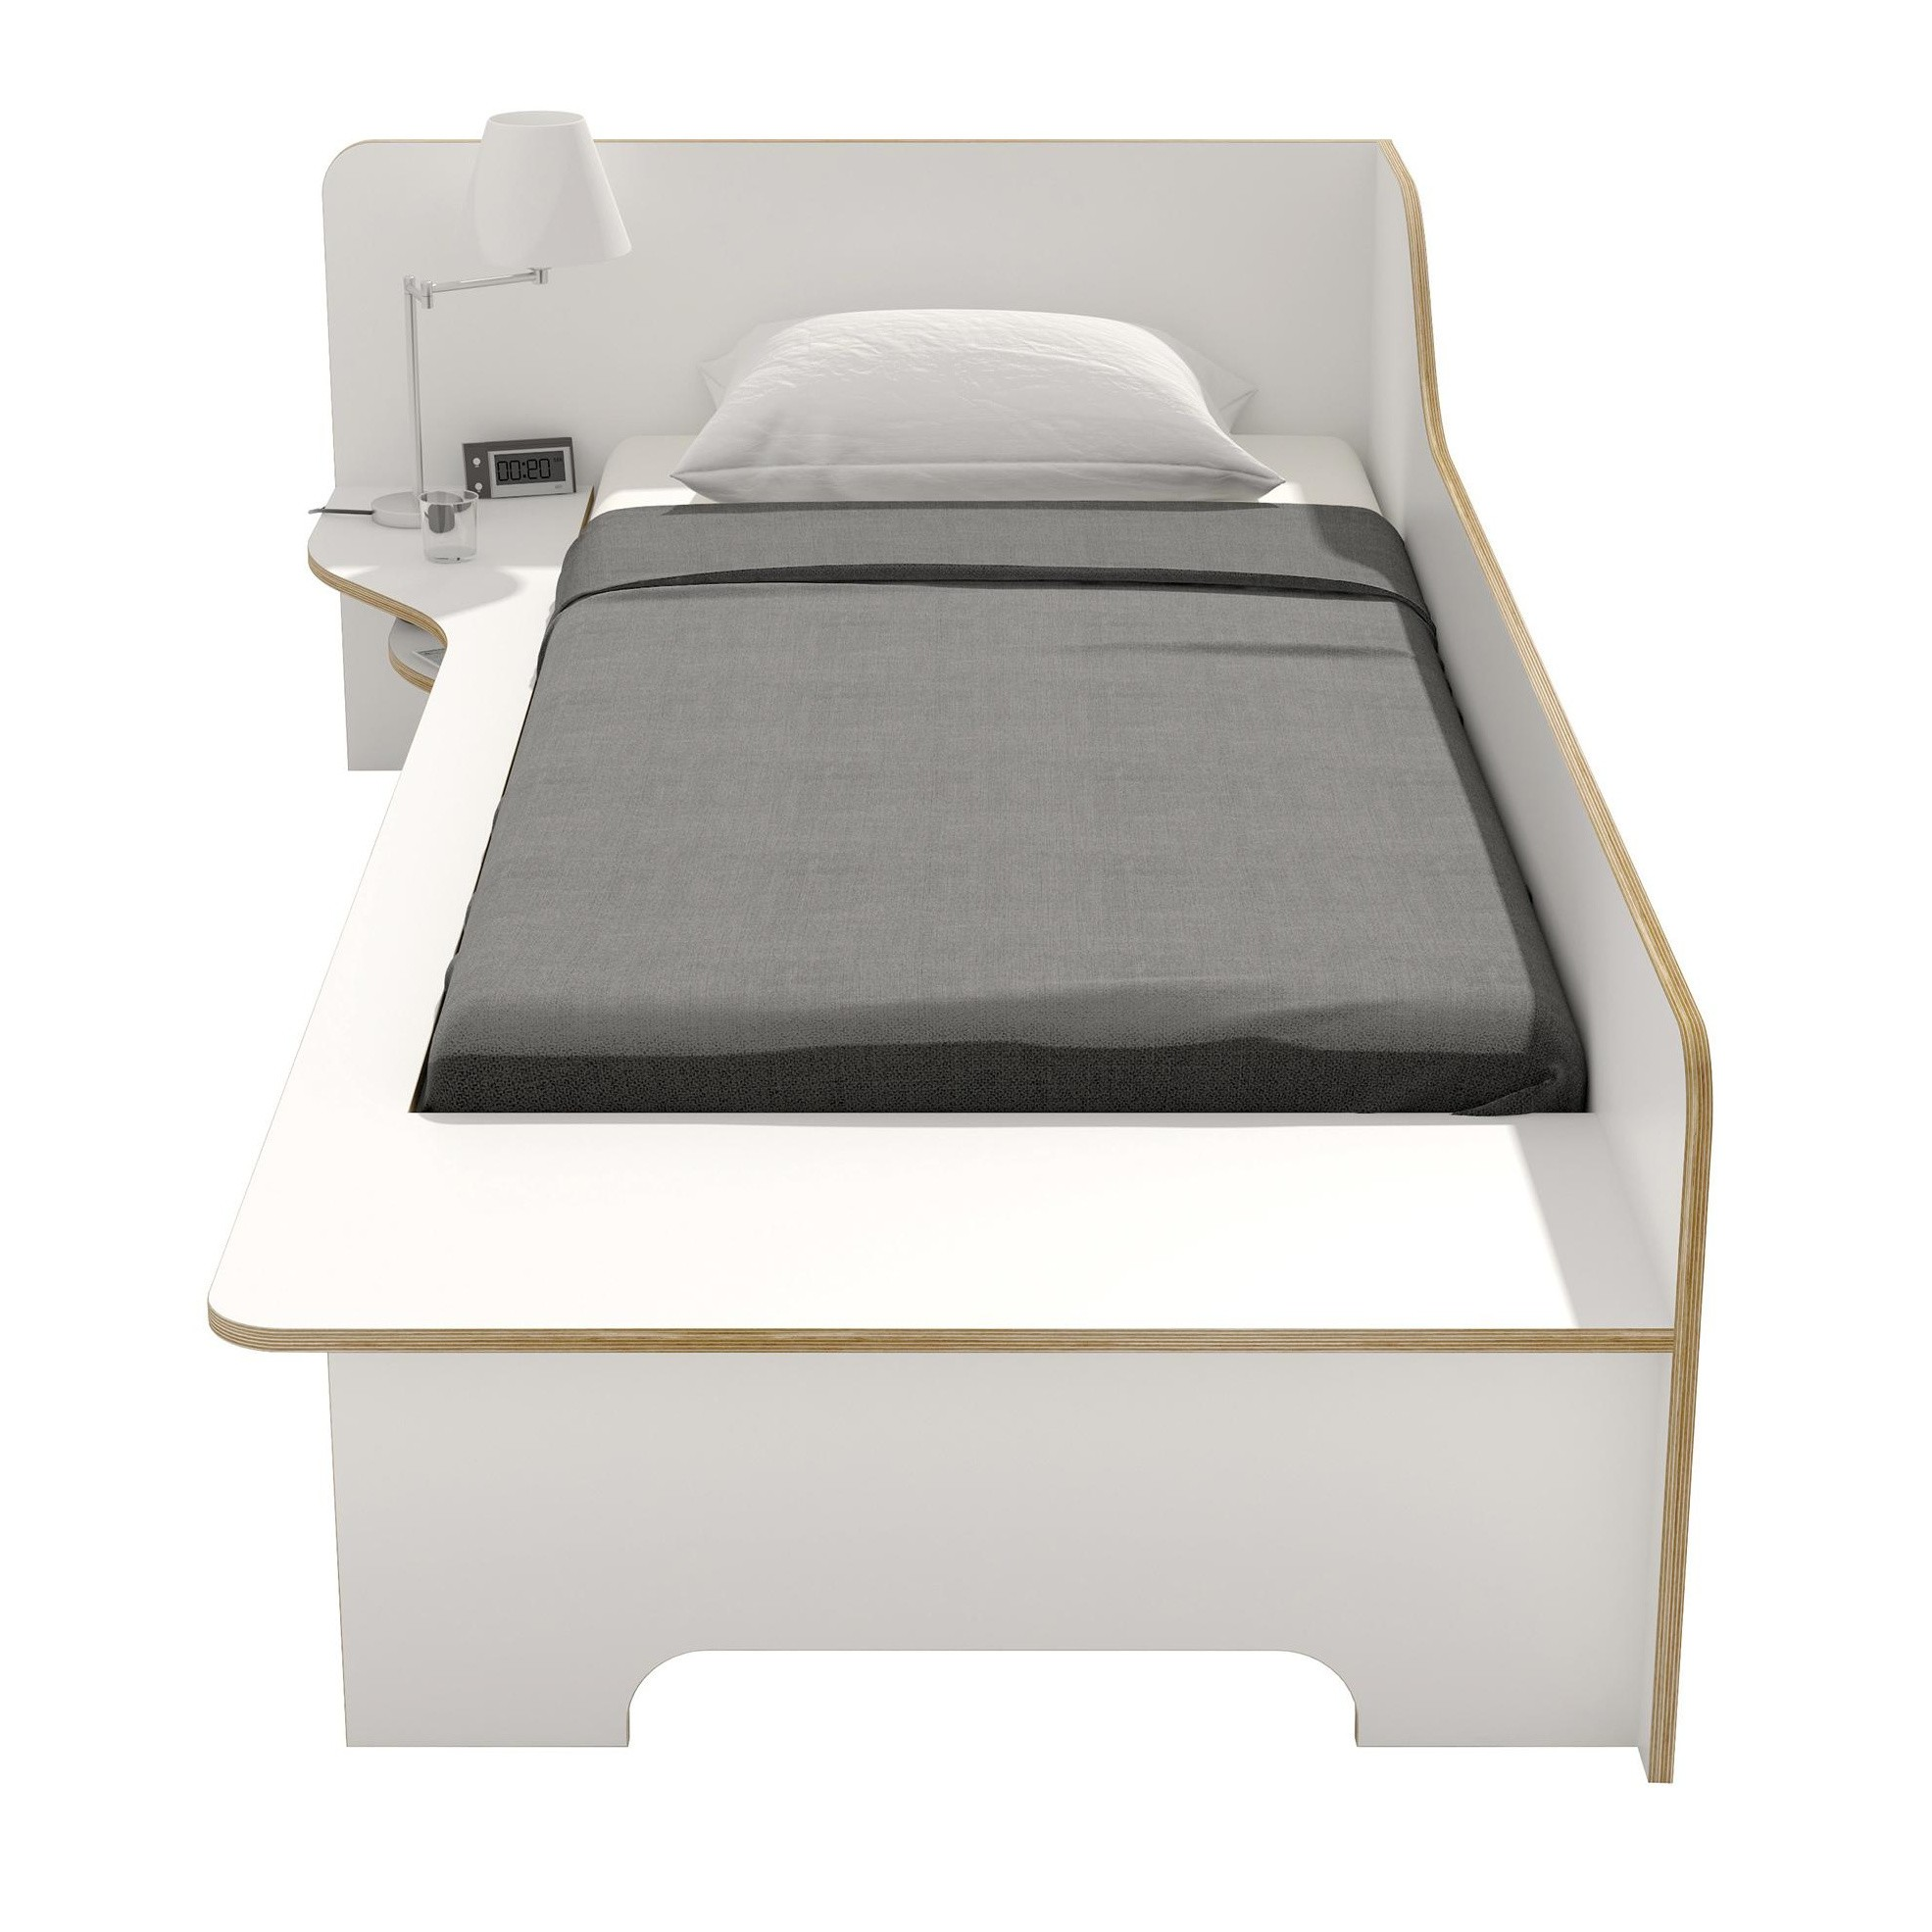 Muller Mobelwerkstatten Plane Bed With Storage Box Ambientedirect